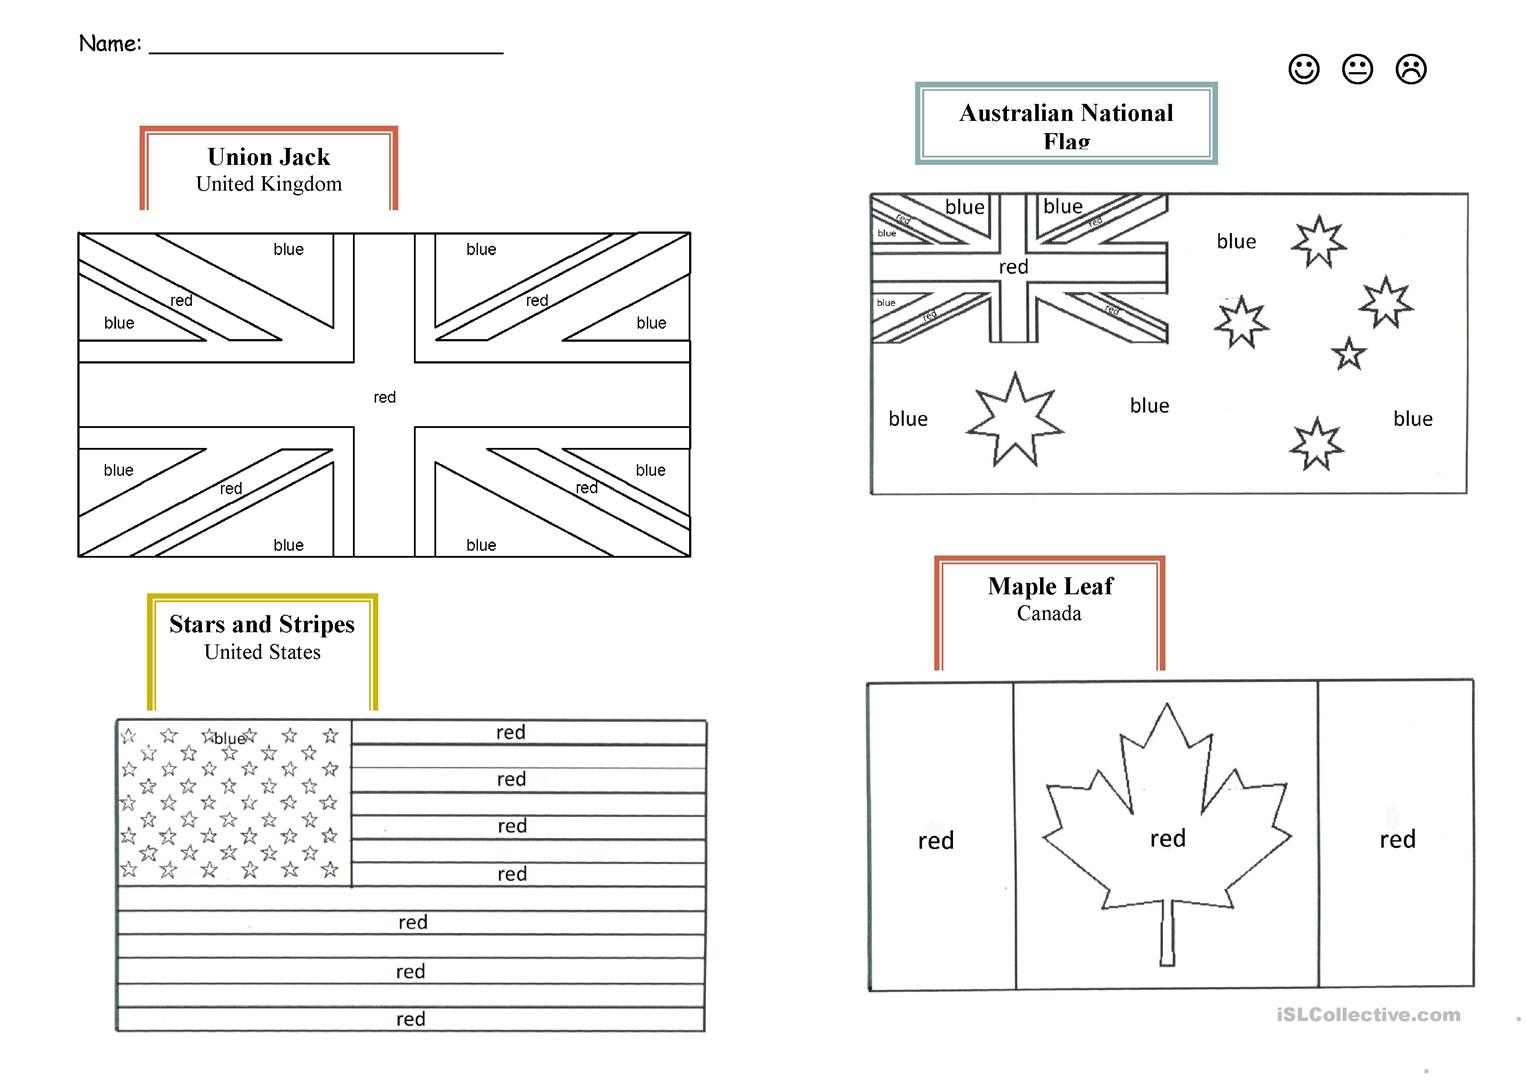 English Speaking Countries Flags